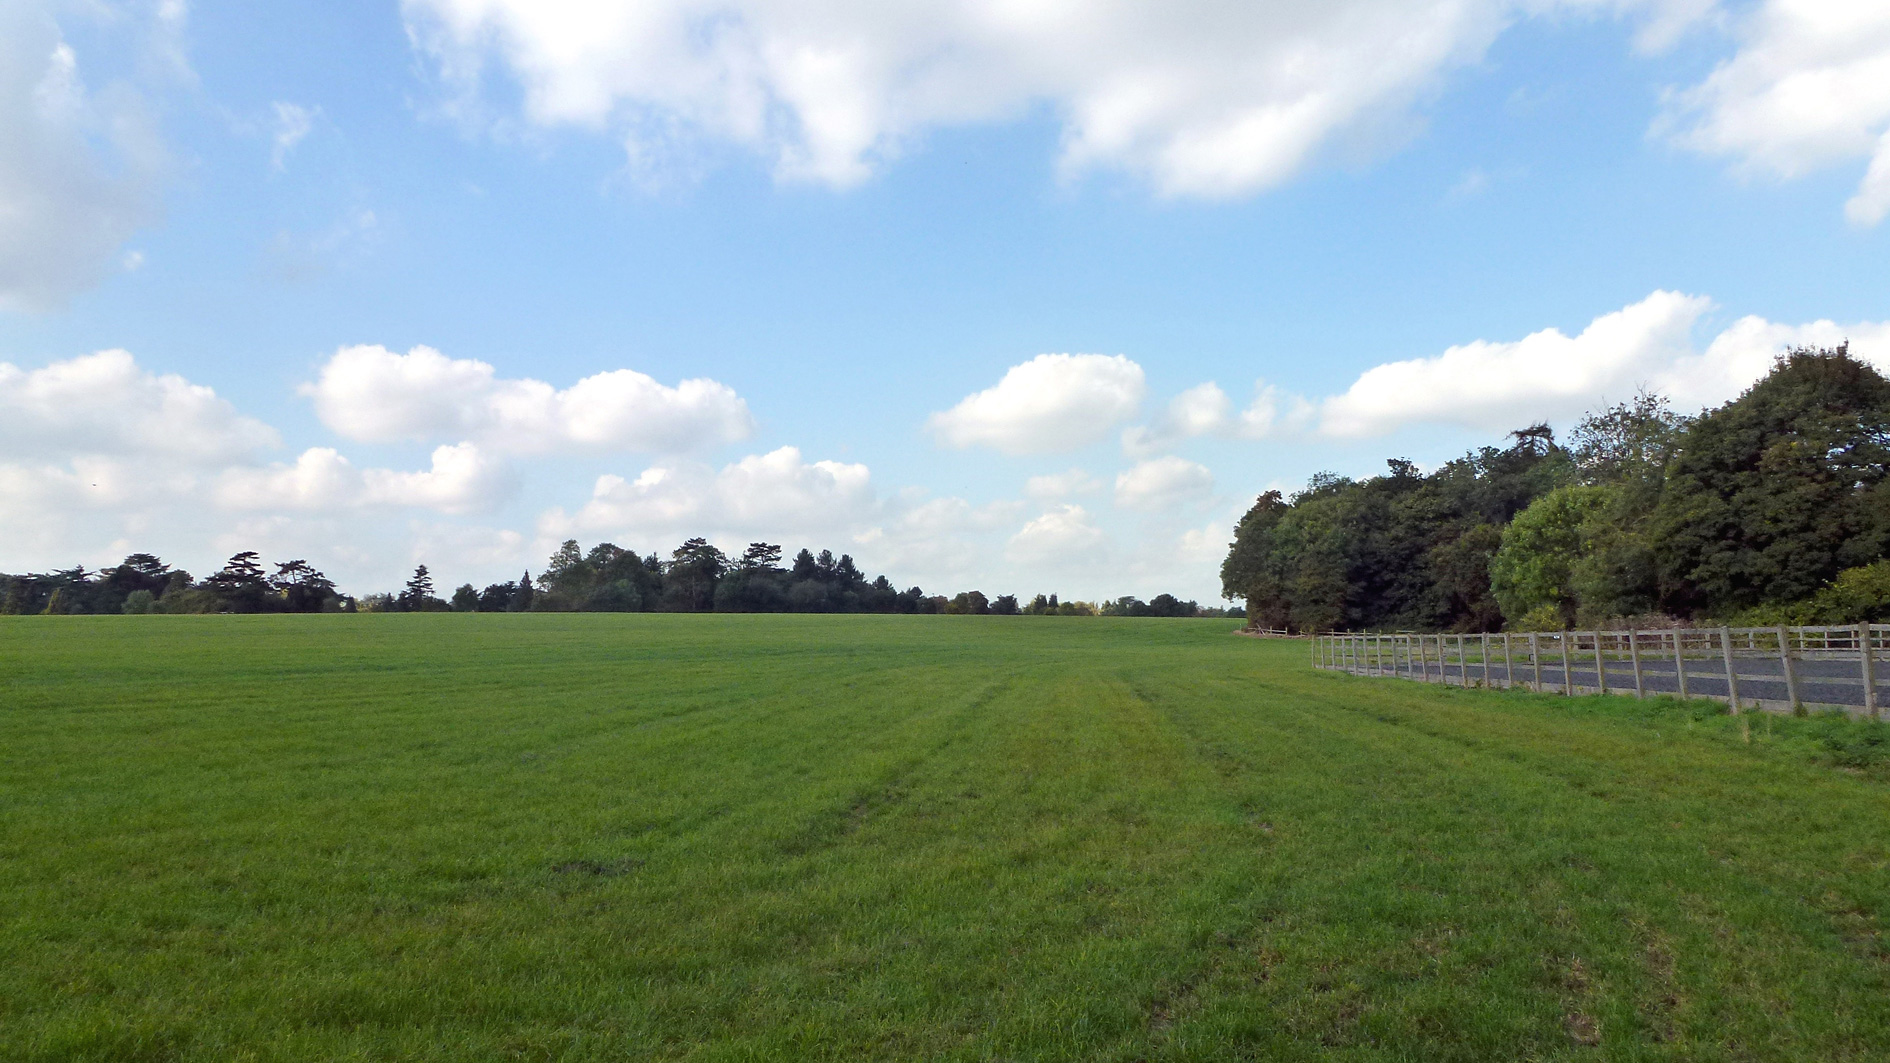 Land for sale in Bricket Wood, St Albans